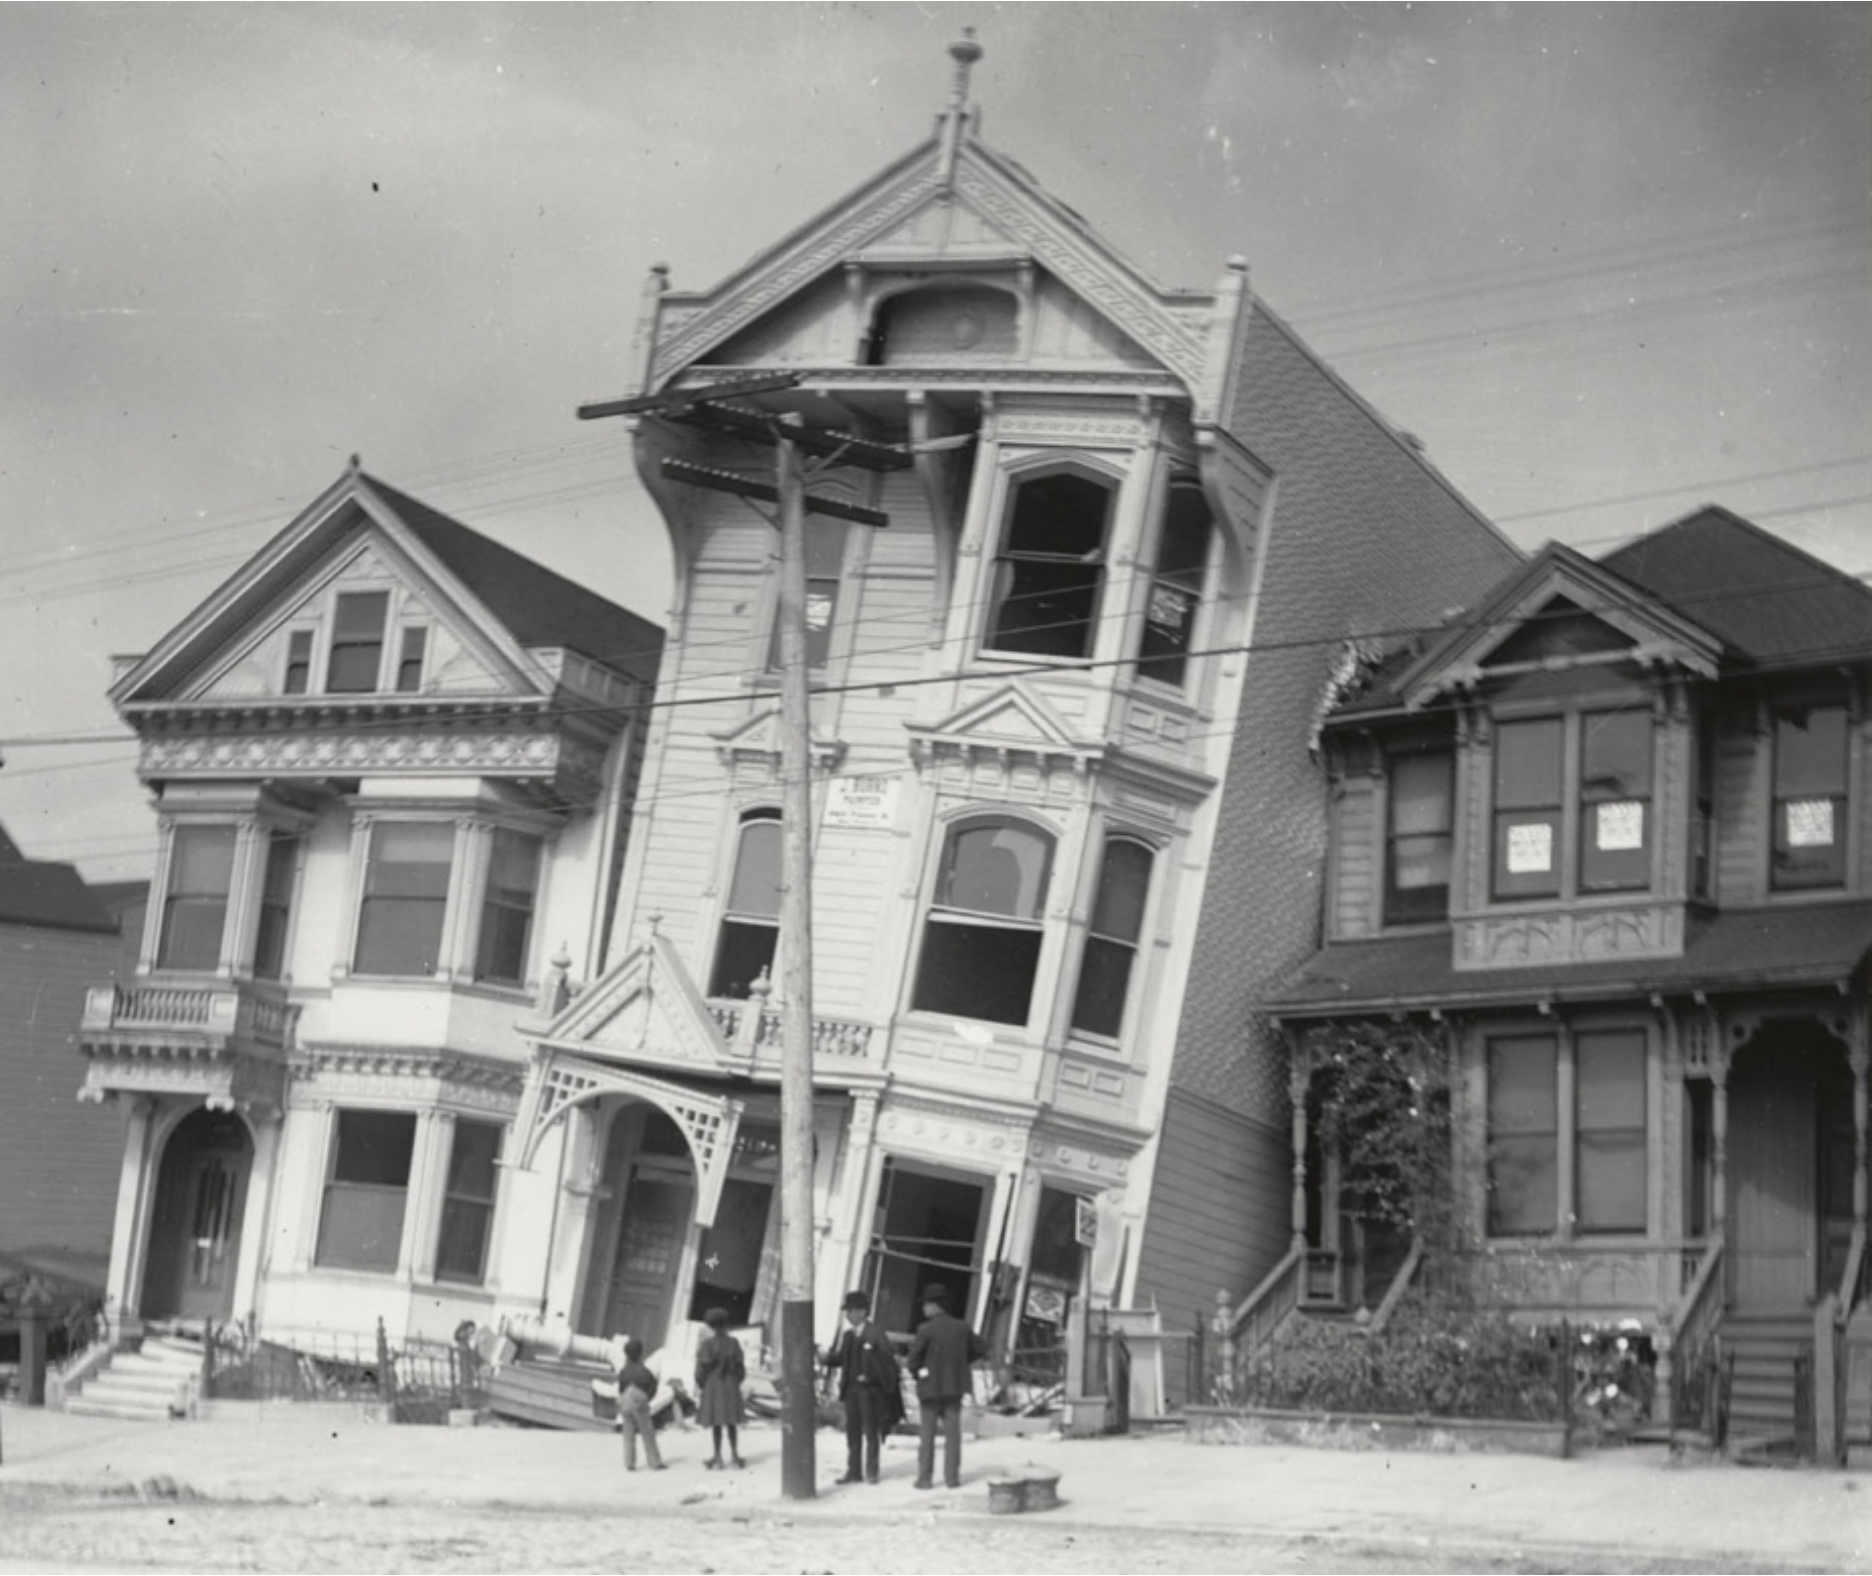 Houses that tilted and sunk in the 1906 earthquake (Courtesy of the Bancroft Library, U.C. Berkeley)